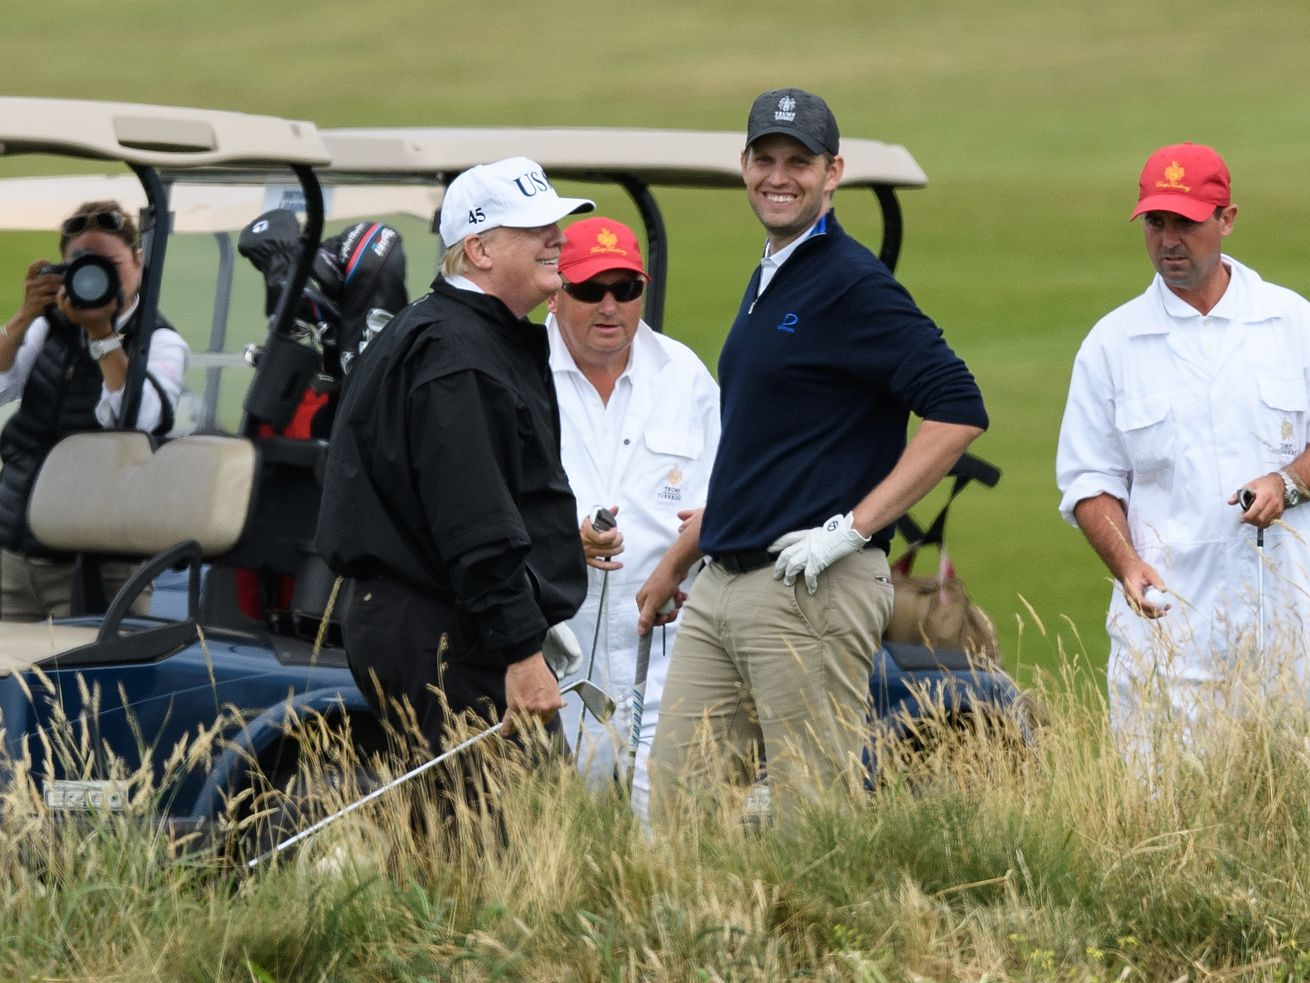 President Donald Trump and his son, Eric Trump, on the golf course in July 2018.